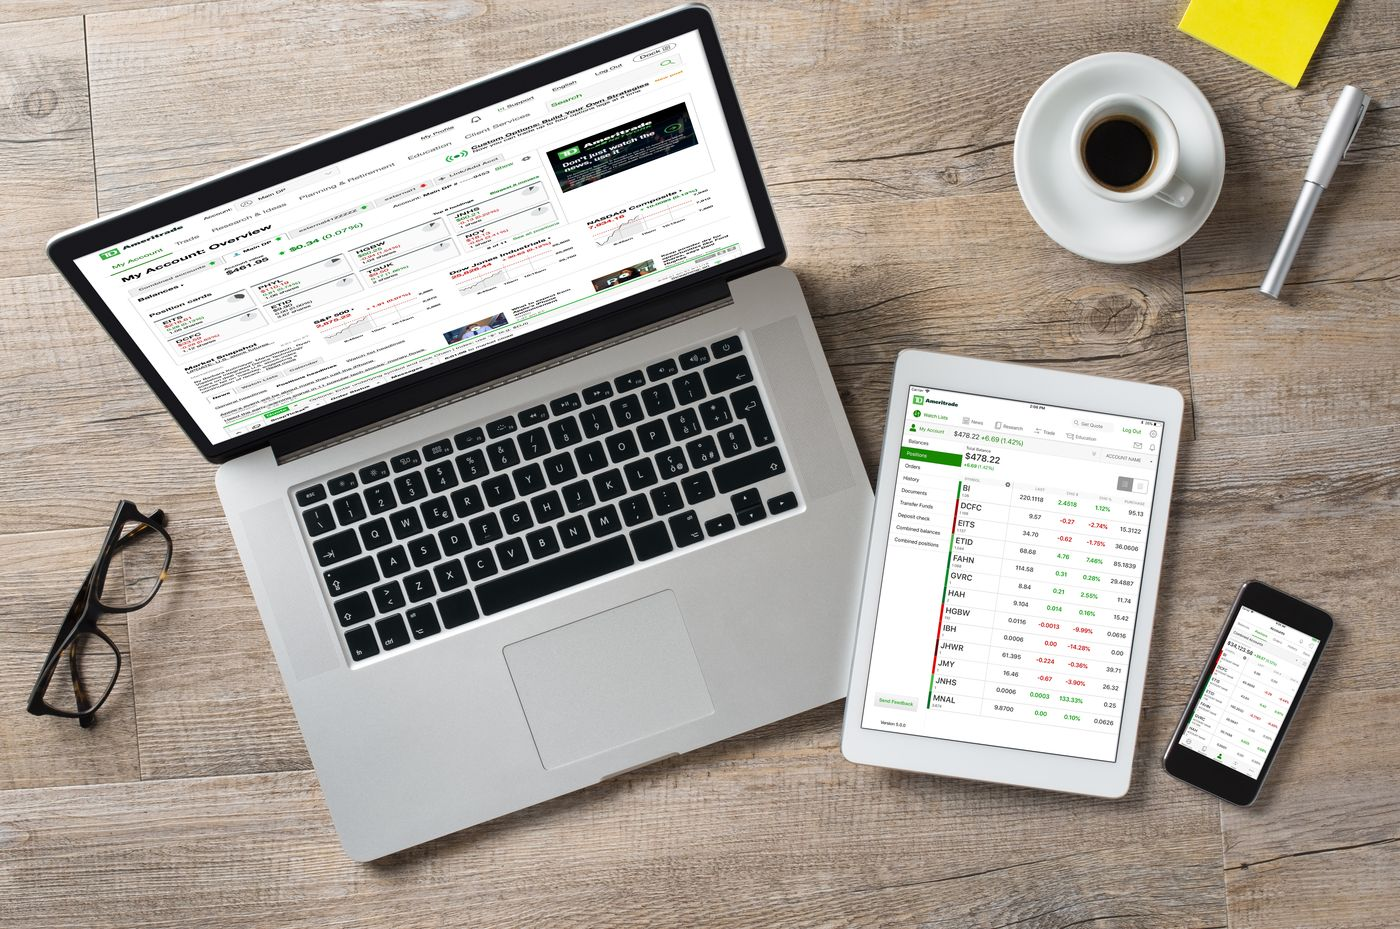 https://tickertapecdn.tdameritrade.com/assets/images/pages/md/Mobile trading user experience